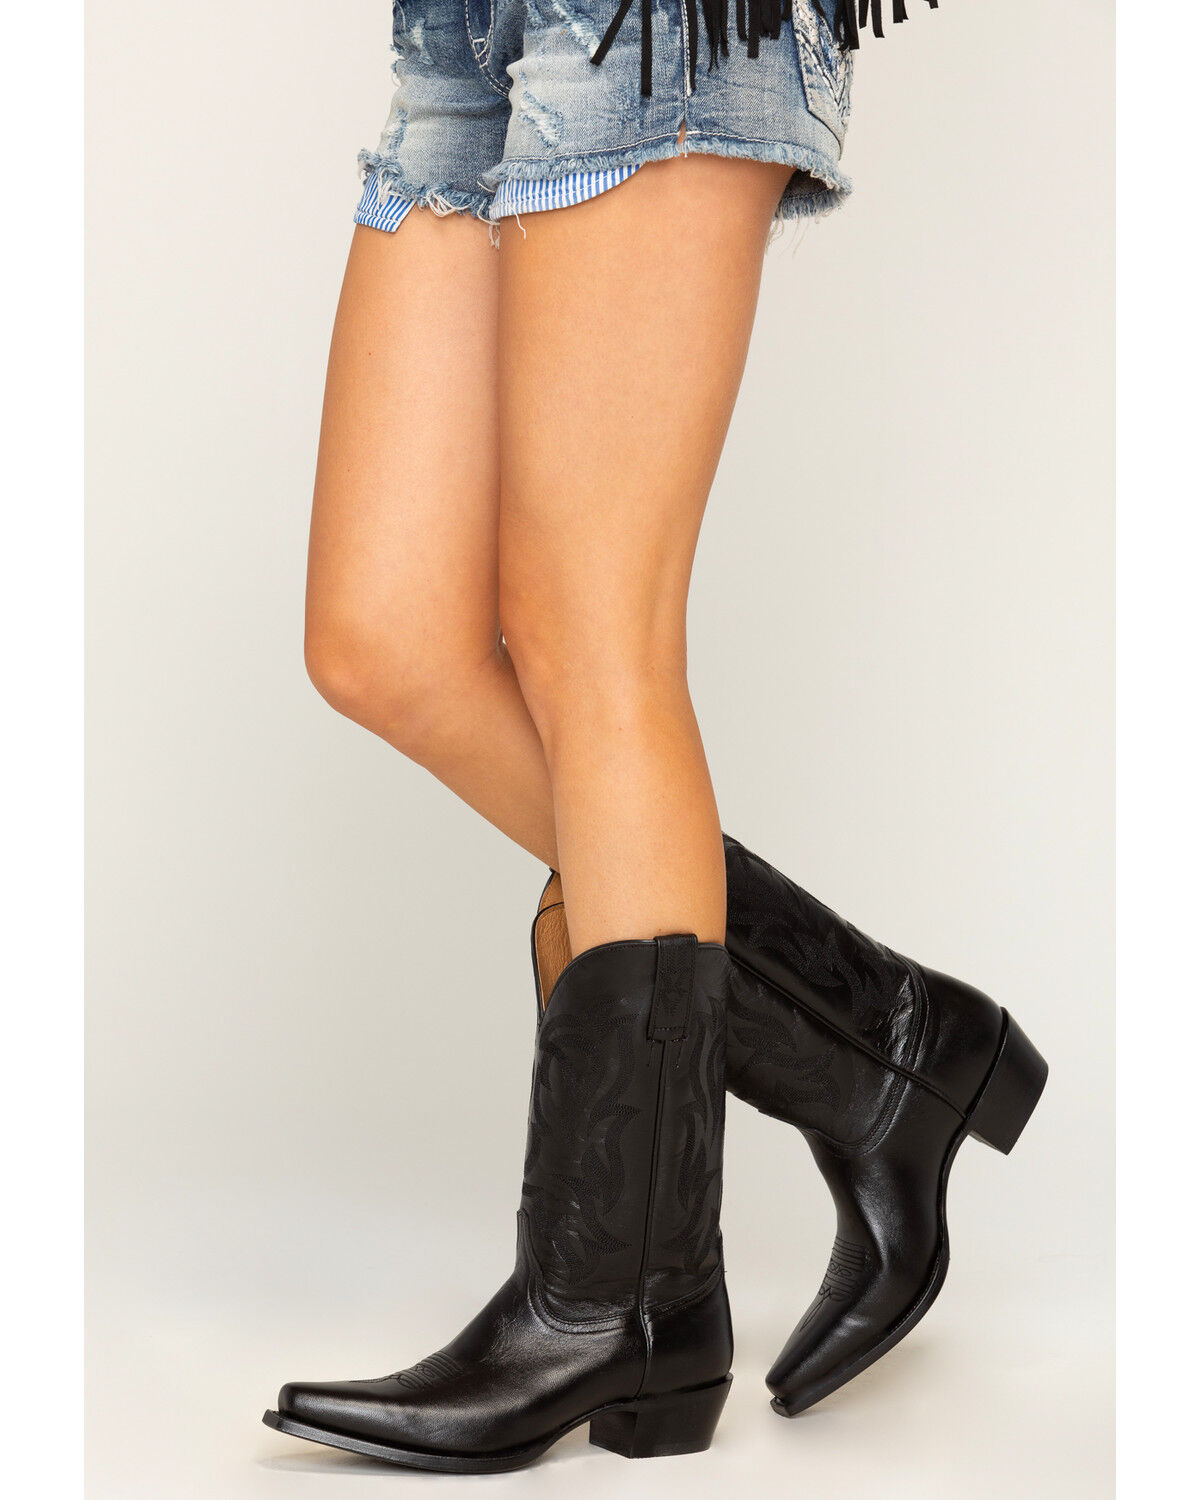 Black Cowgirl Boots - Snip Toe